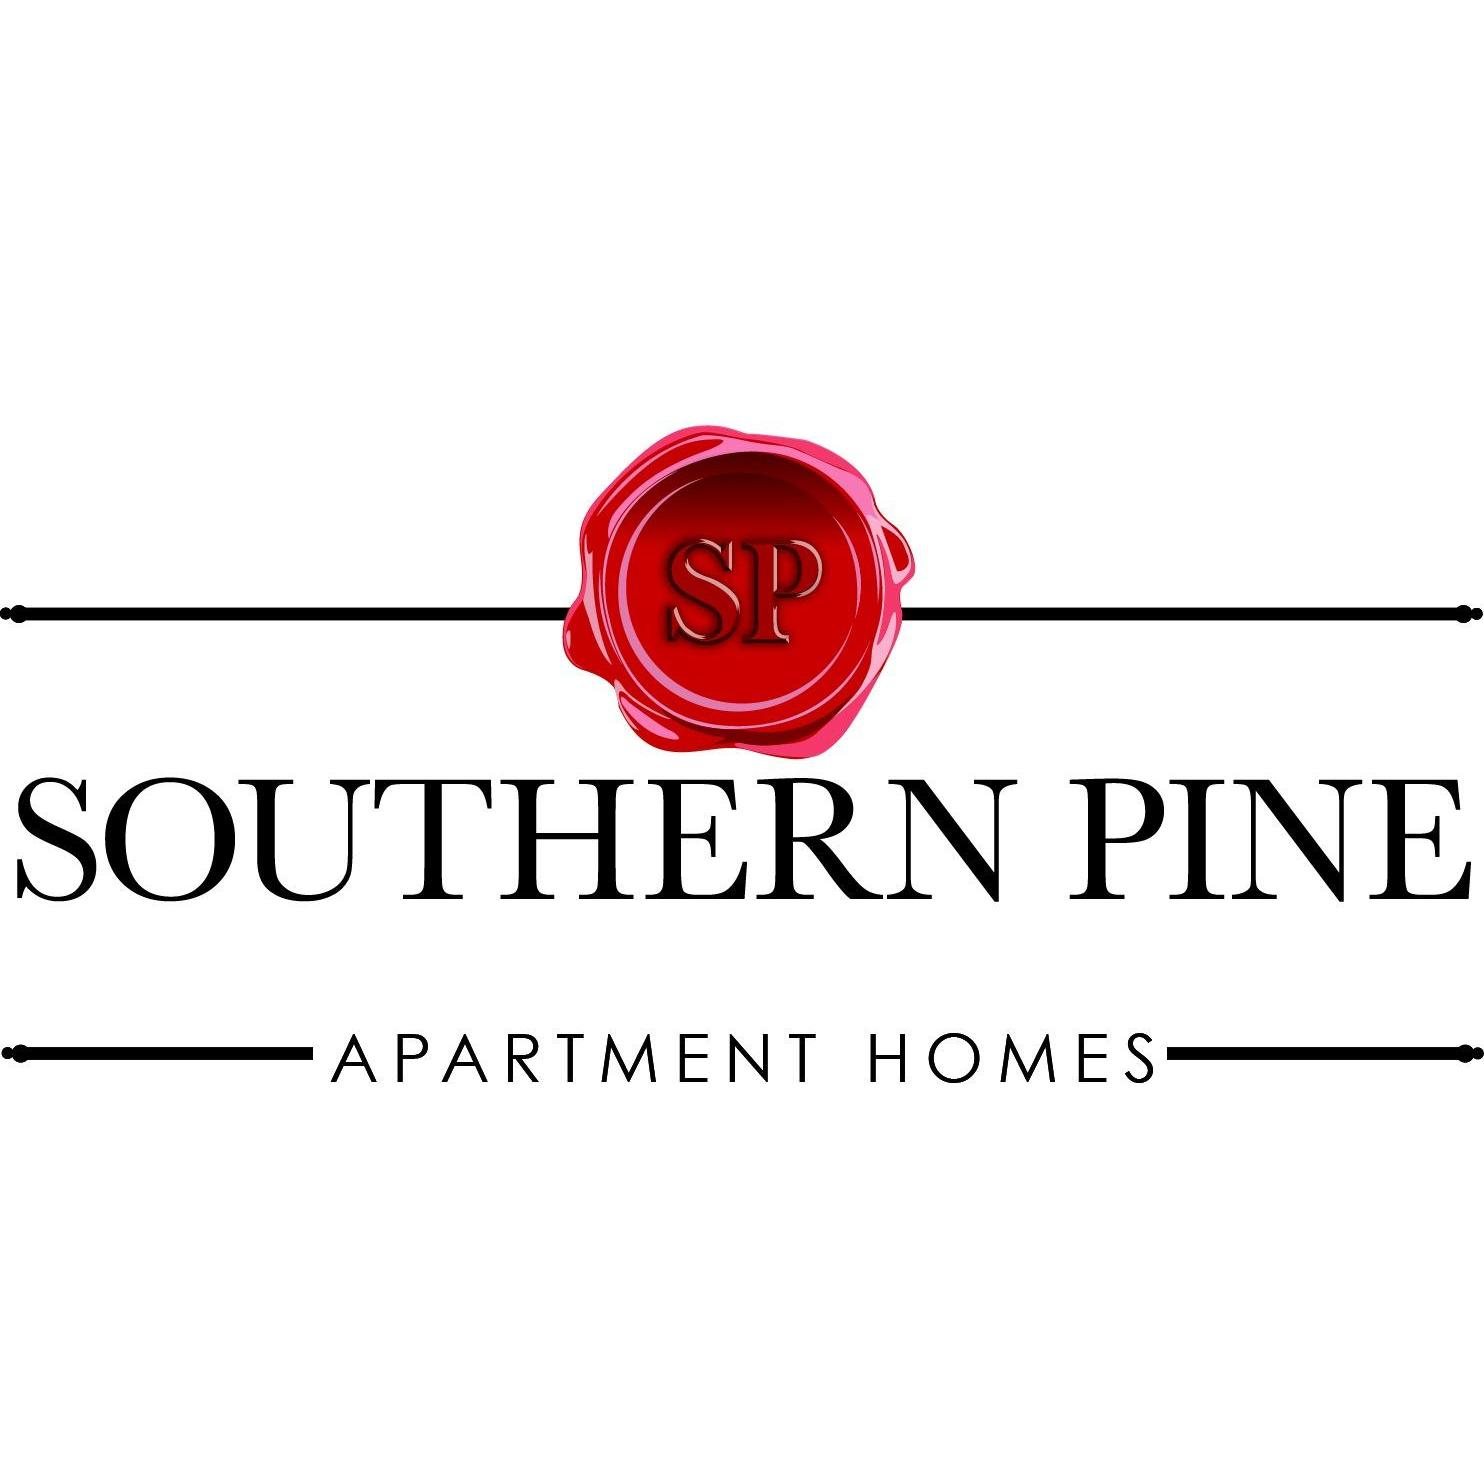 Southern Pine Apartment Homes